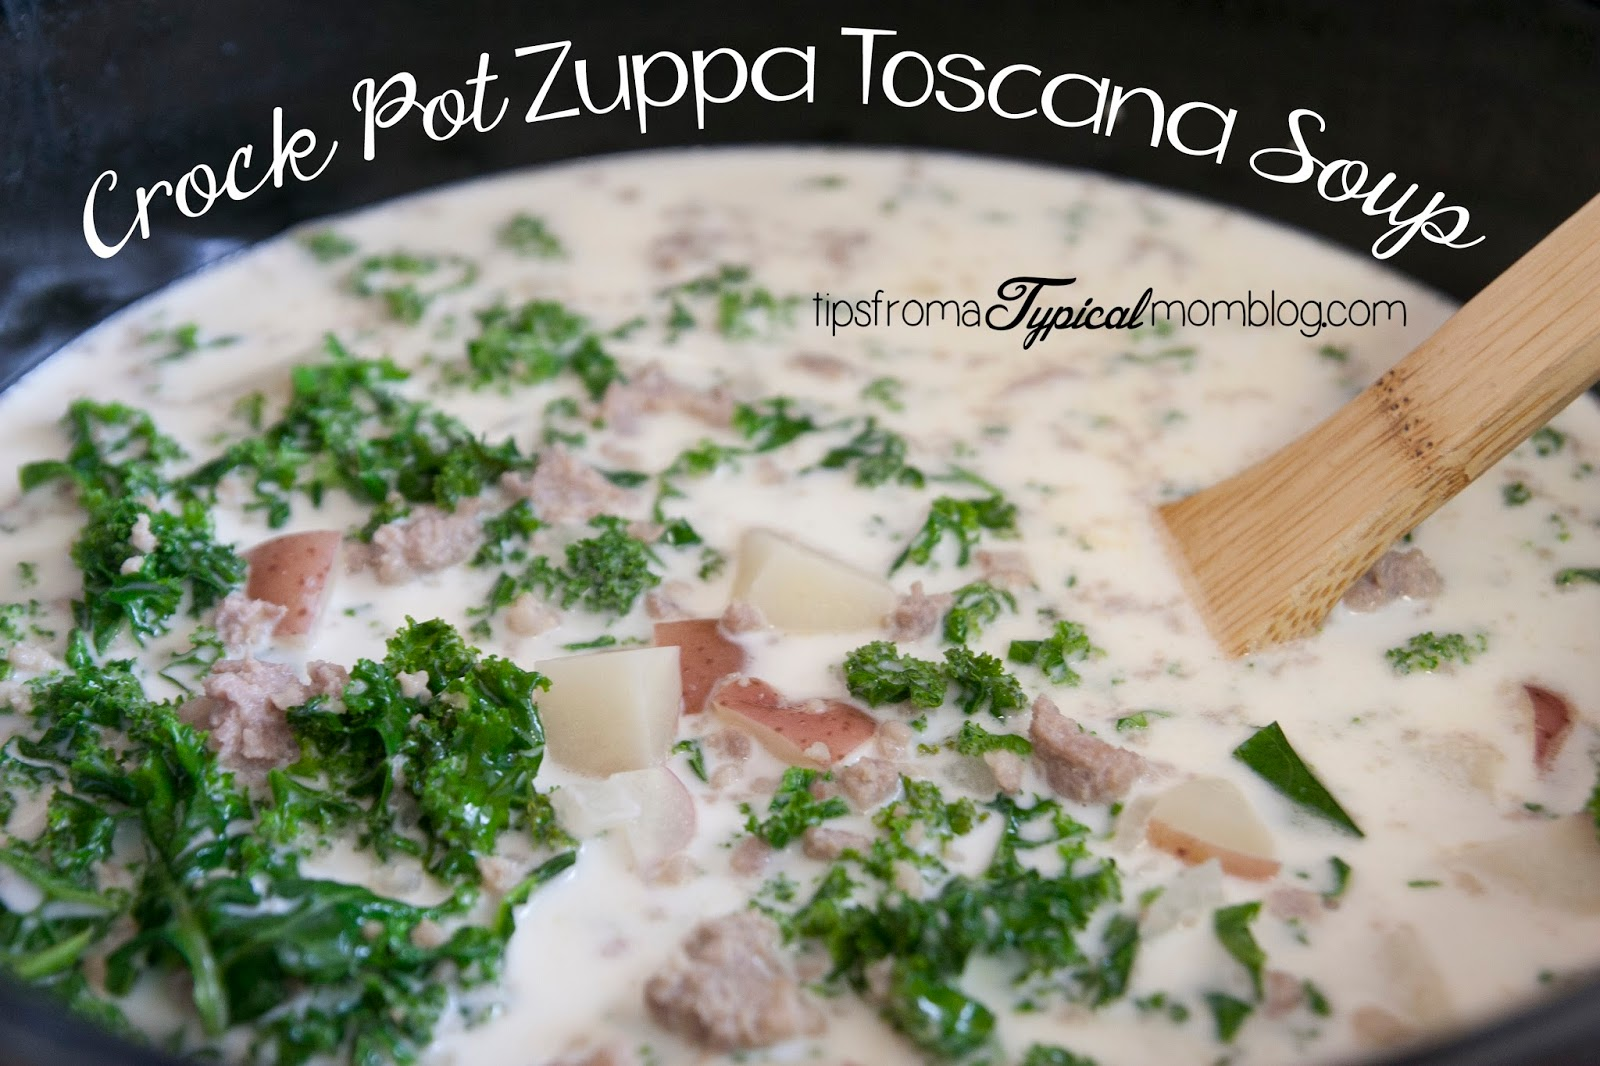 Crock Pot Zuppa Toscana Soup Copy Cat Tips From A